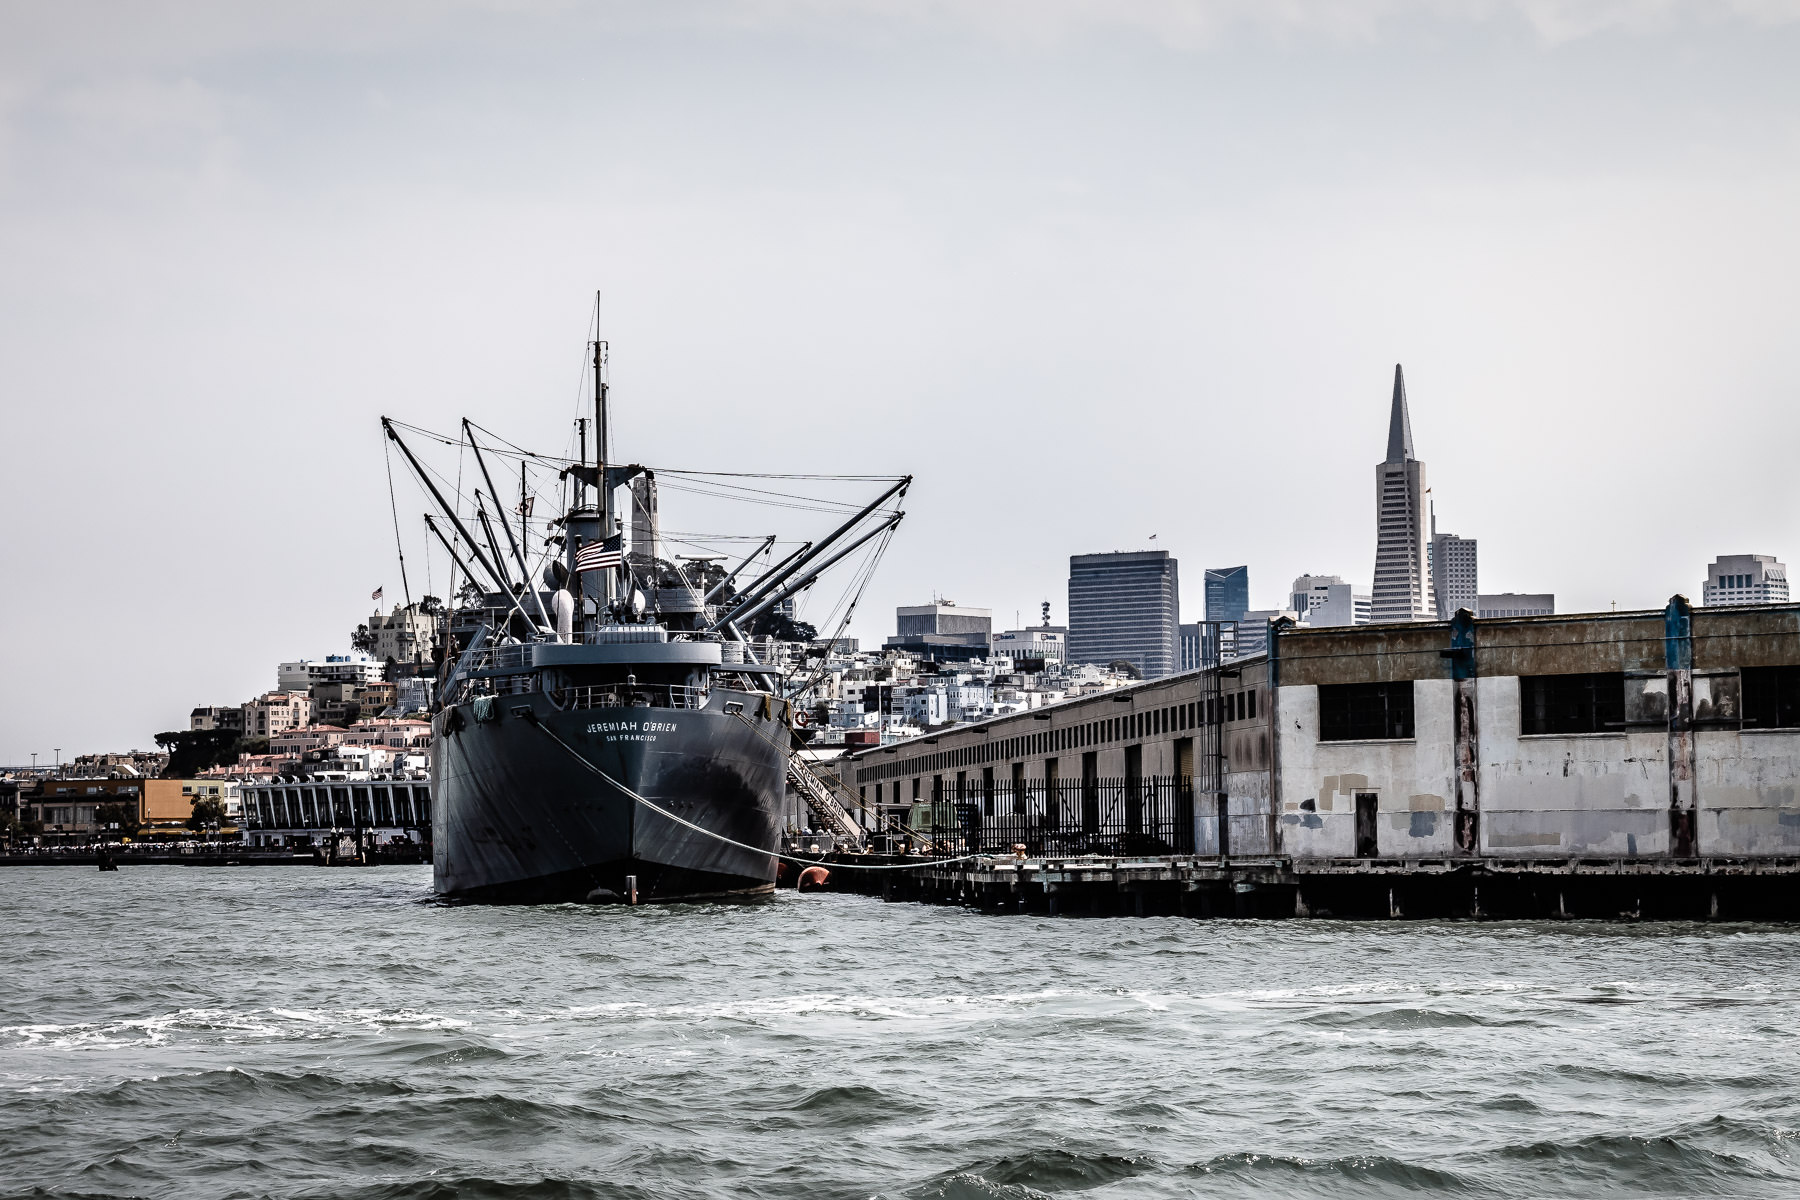 The SS Jeremiah O'Brien—one of only two surviving operational Liberty ships from World War II—docked at San Francisco's Pier 45 with the city as its backdrop.